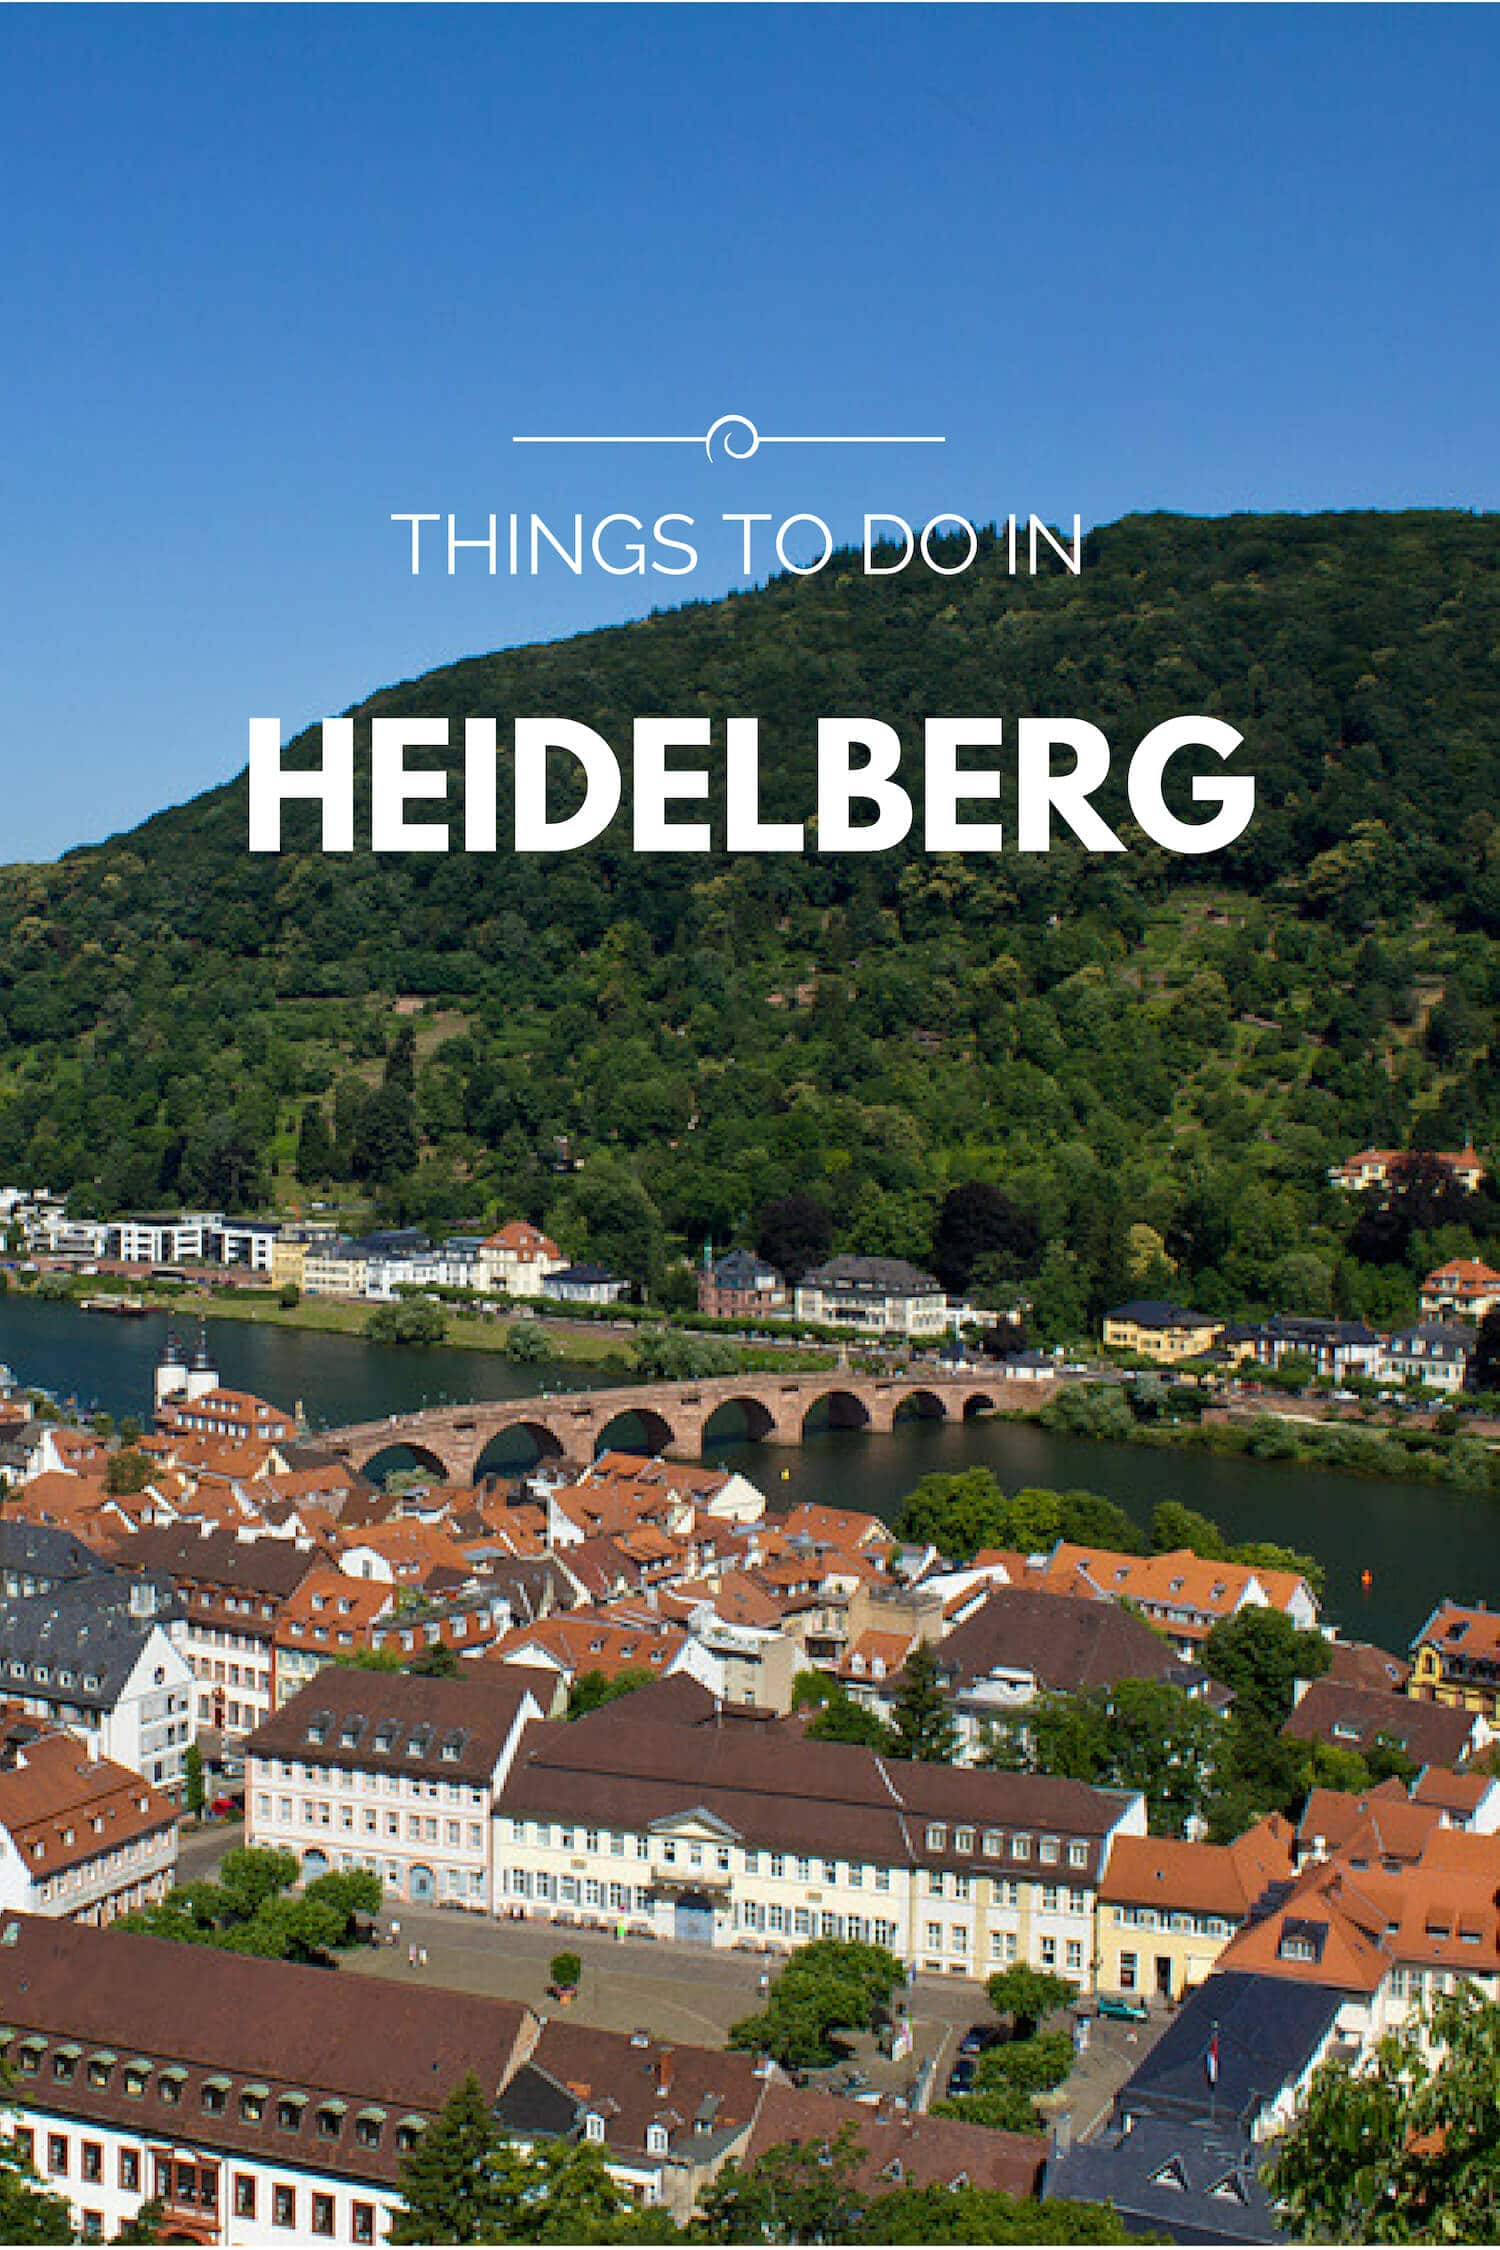 Things to do in Heidelberg, Germany